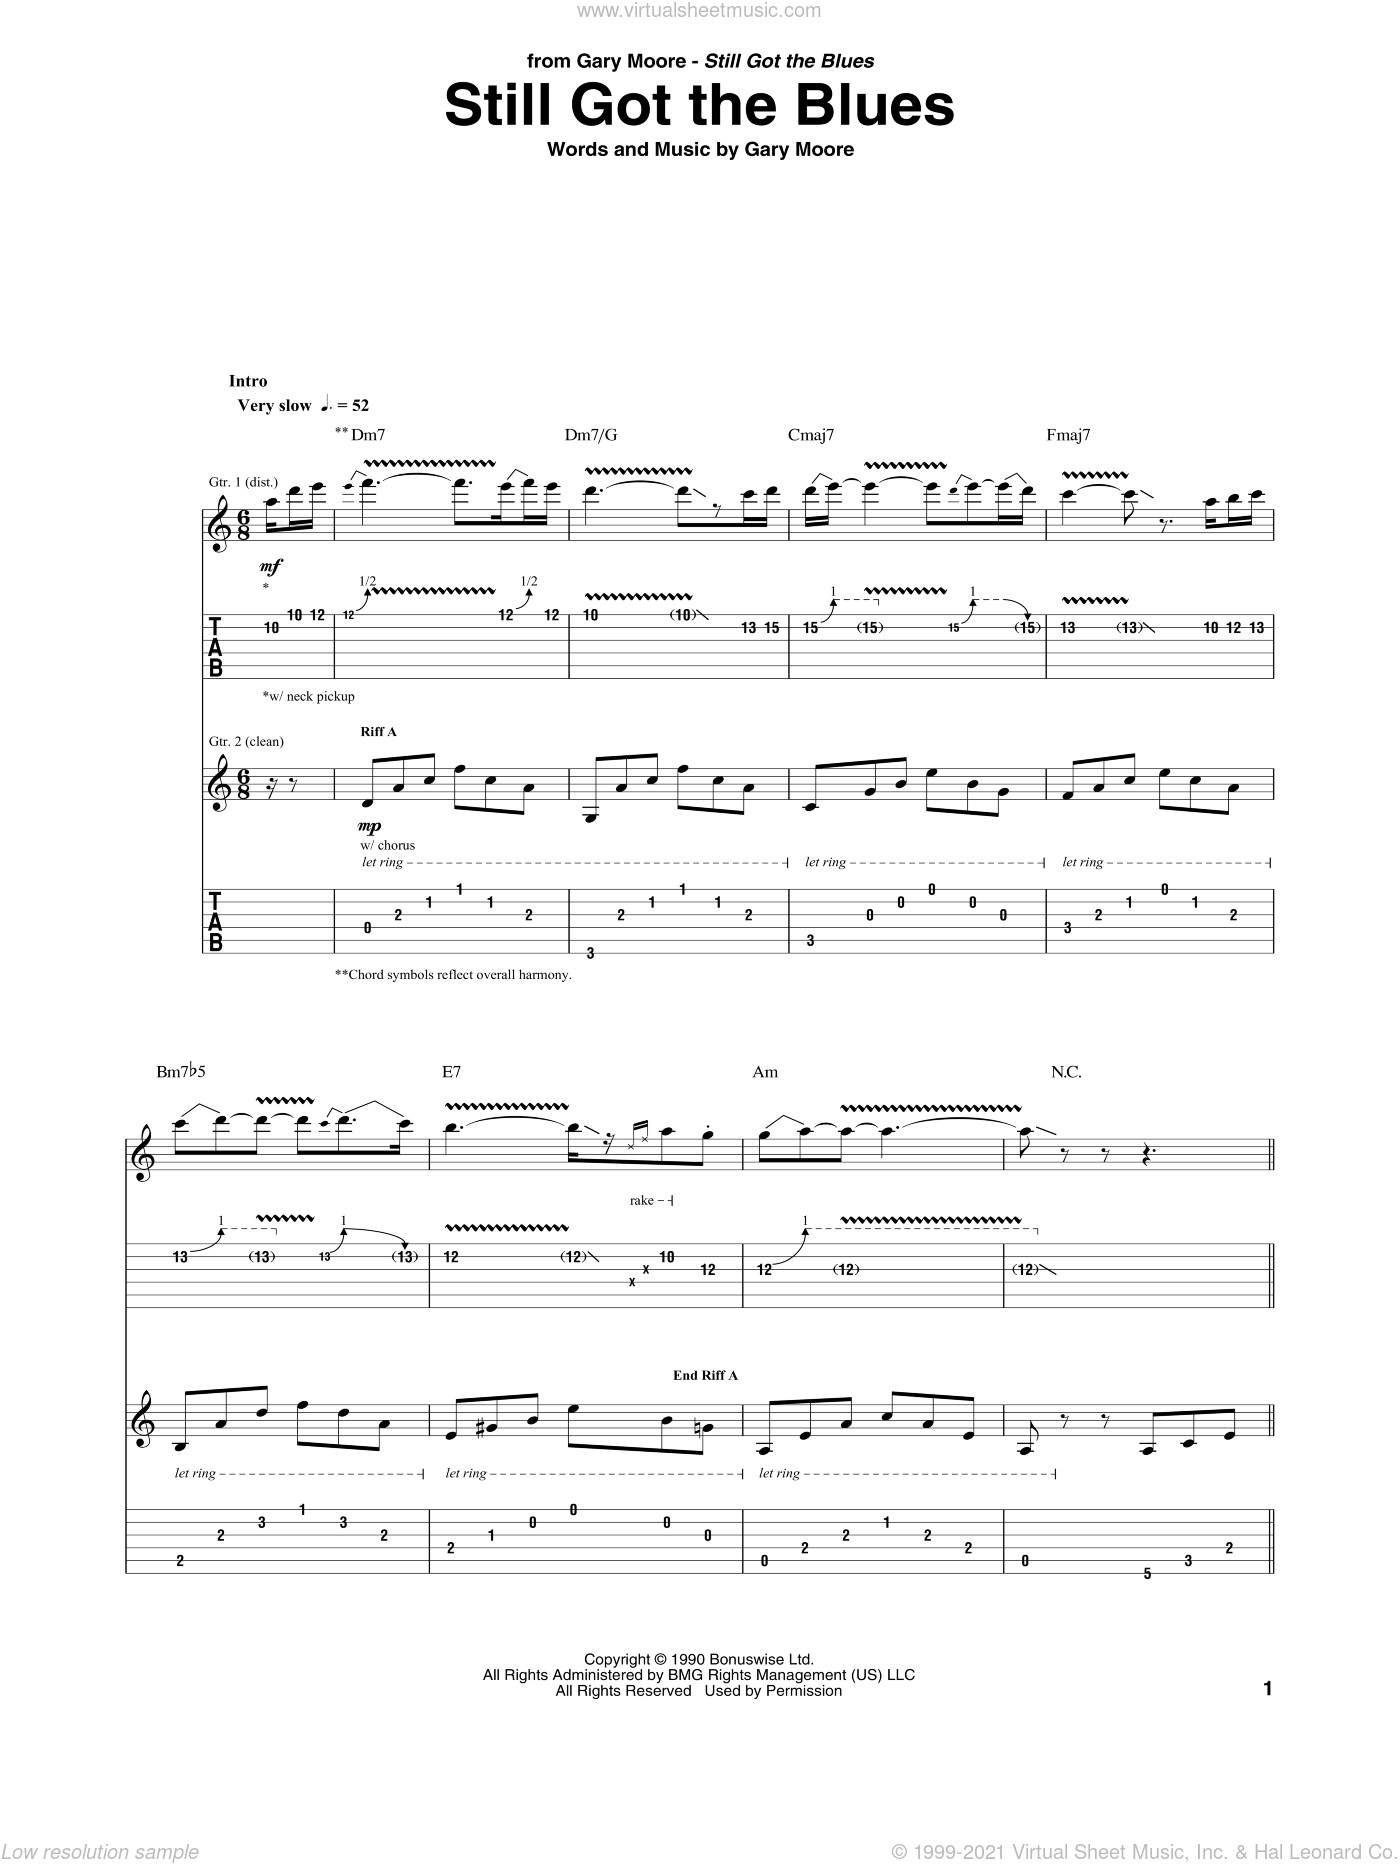 Still Got The Blues sheet music for guitar (tablature) by Gary Moore. Score Image Preview.